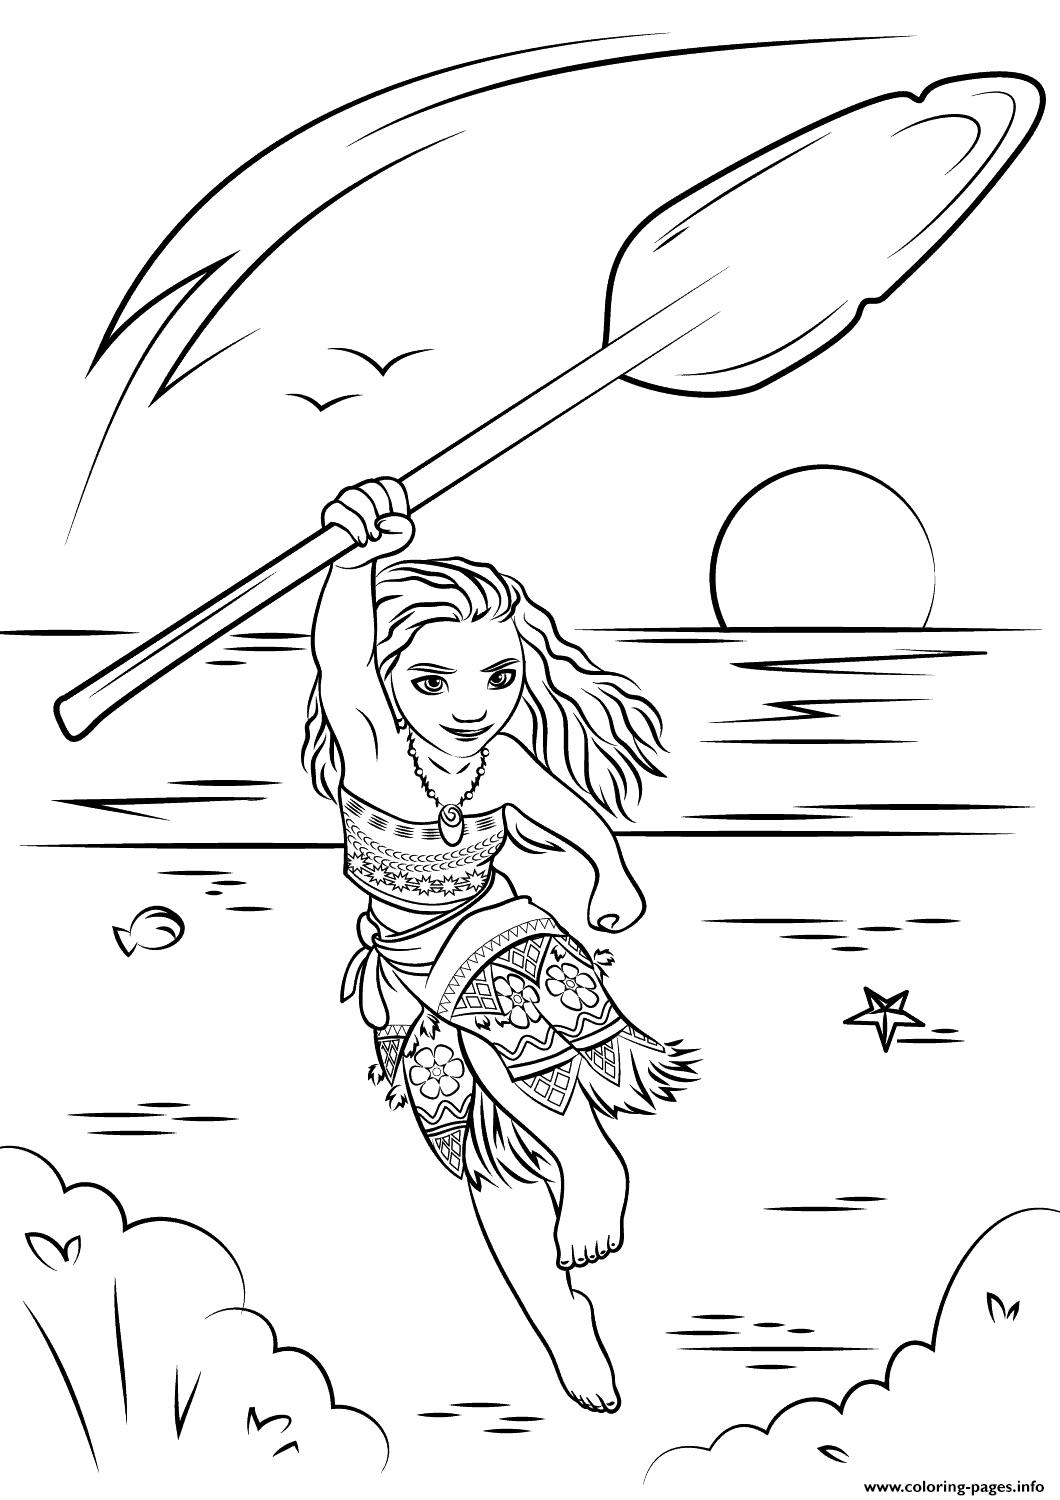 Moana Coloring Pages Coloring Home Coloring Pages Moana